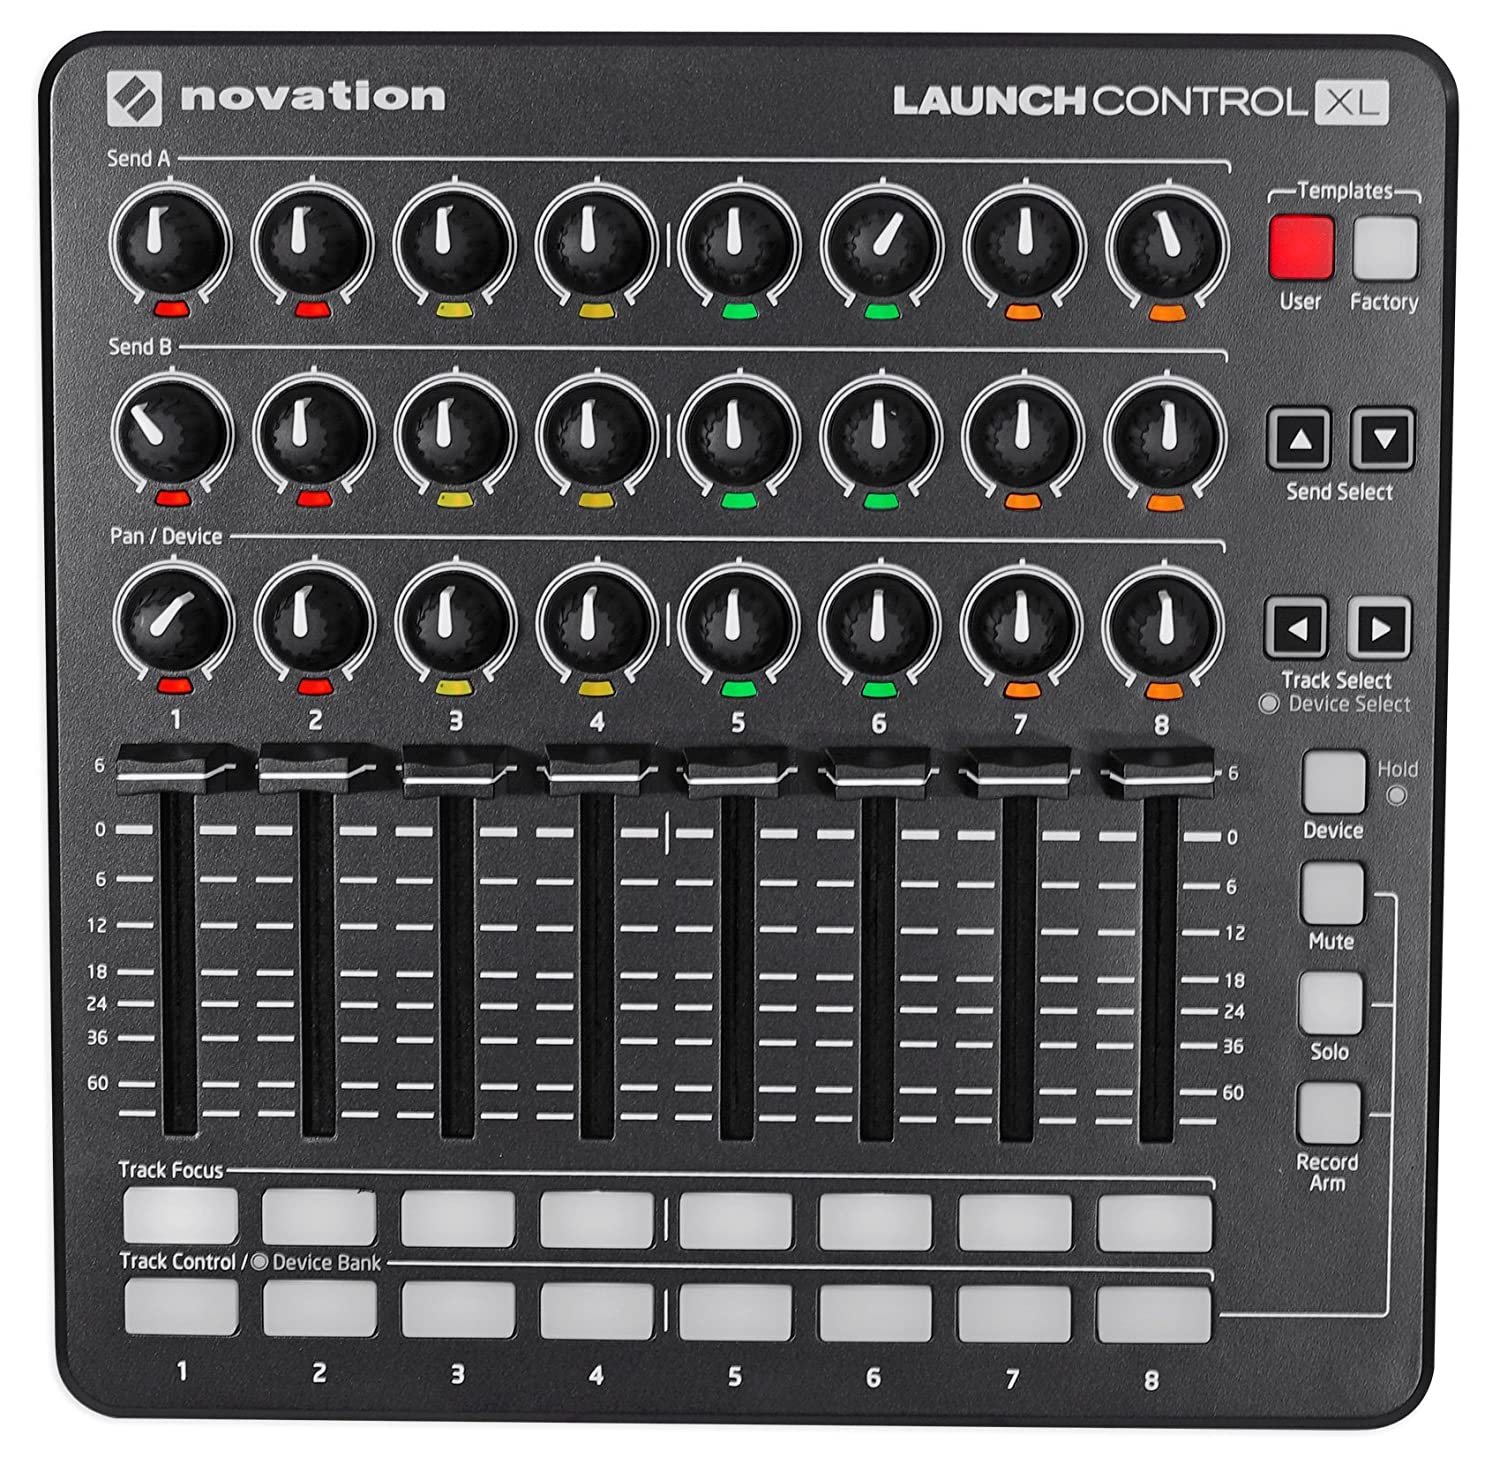 Novation Launch Control XL MIDI USB Ableton Live Controller w/ HUI Integration Focusrite/Novation AMS-LAUNCH-CONTROL-XL-BLK